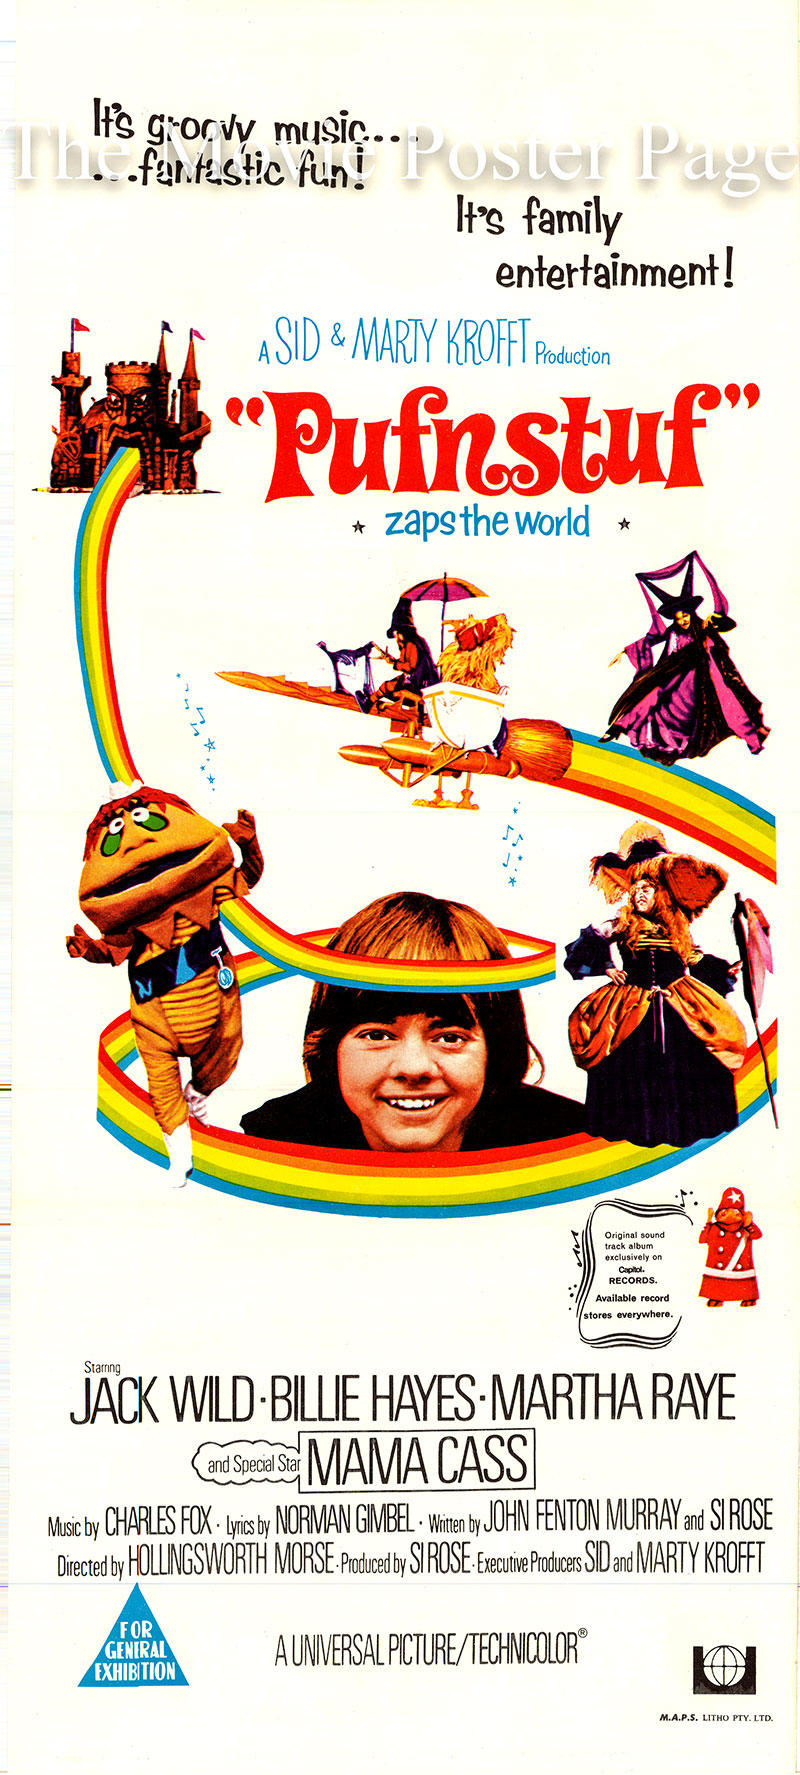 Pictured is an Australian day bill poster for the 1970 Hollingsworth Morse film Pufnstuf written by John Fenton Murray and Si Rose and starring Jack Wild as Jimmy.